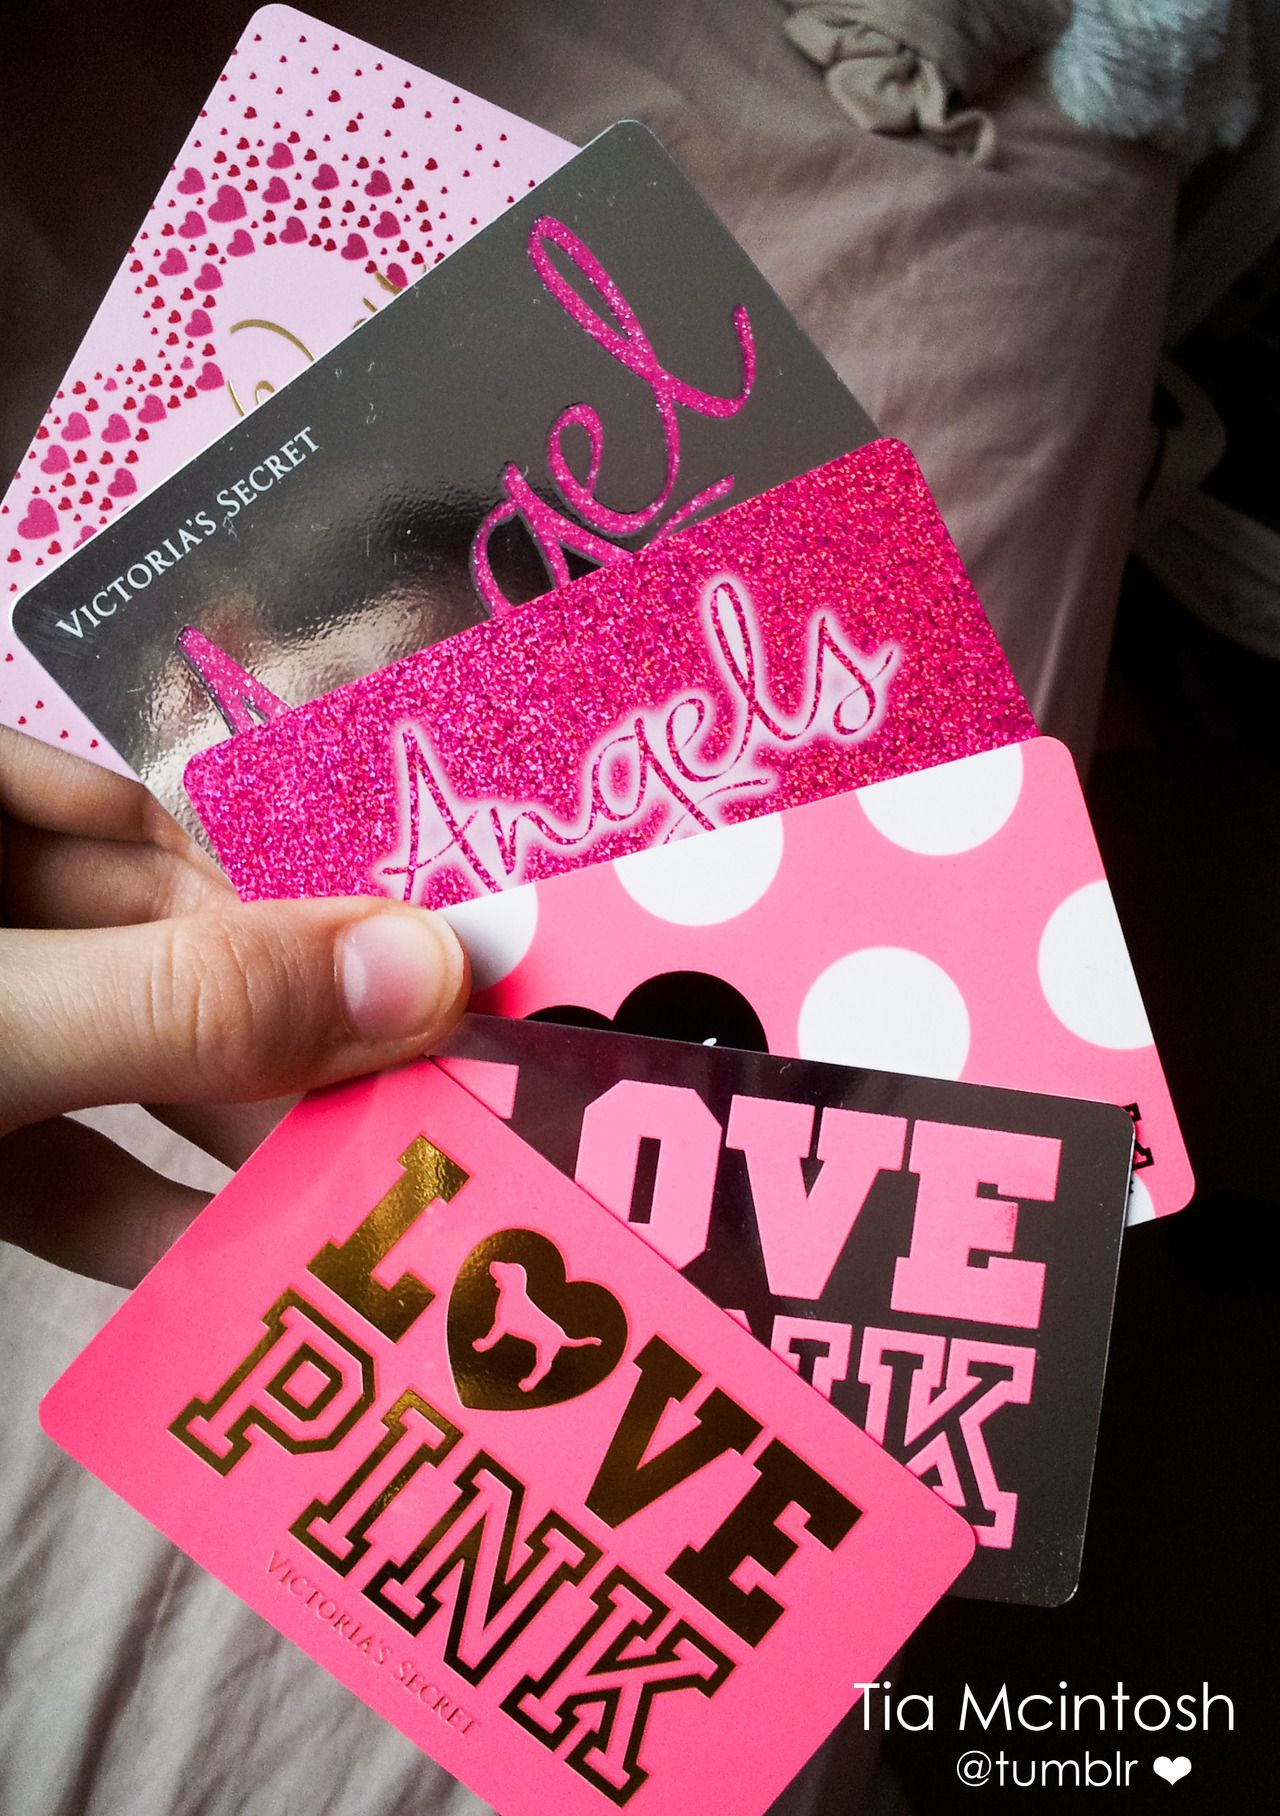 Seriously if anyone wants to give me stuff from victorias secret just pink gift card not like victoria secret gift card negle Images